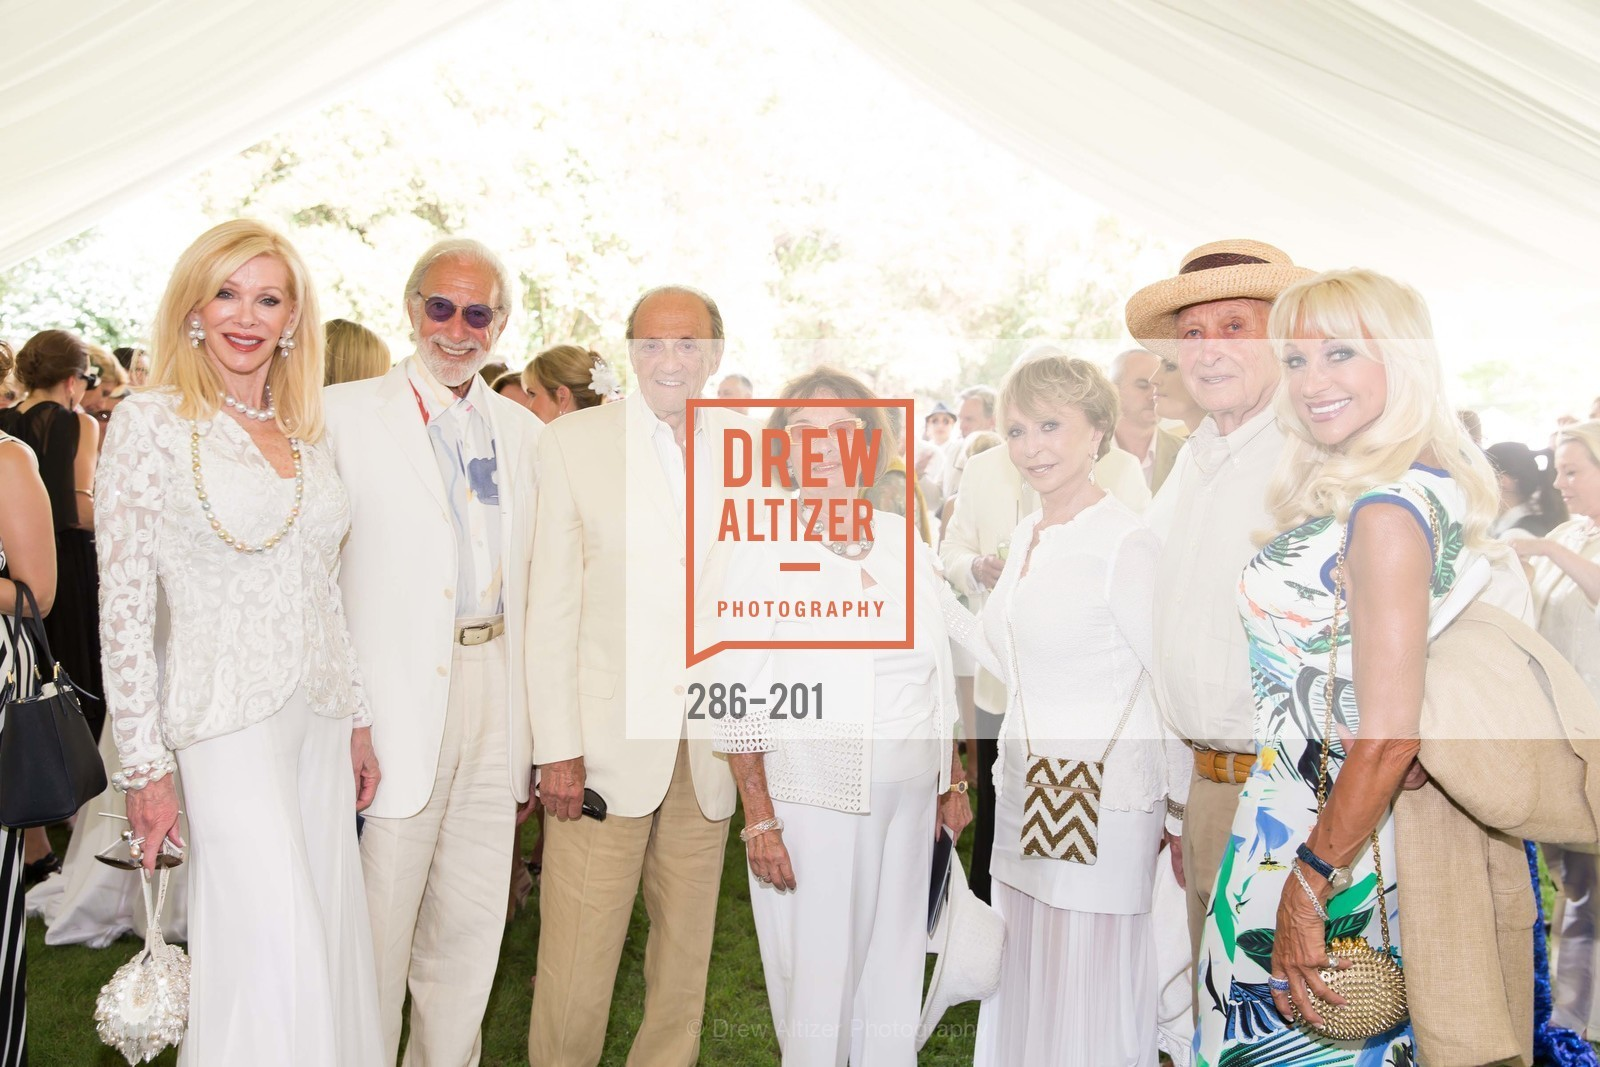 Pamala Deikel, Ted Deikel, Ron Wornick, Anita Wornick, Roberta Sherman, Gerry Grodsky, Daru Kawalkowski, Festival del Sole Annual Gala at Meadowood Napa Valley, Meadowood Napa Valley. 900 Meadowood Ln, July 19th, 2015,Drew Altizer, Drew Altizer Photography, full-service agency, private events, San Francisco photographer, photographer california